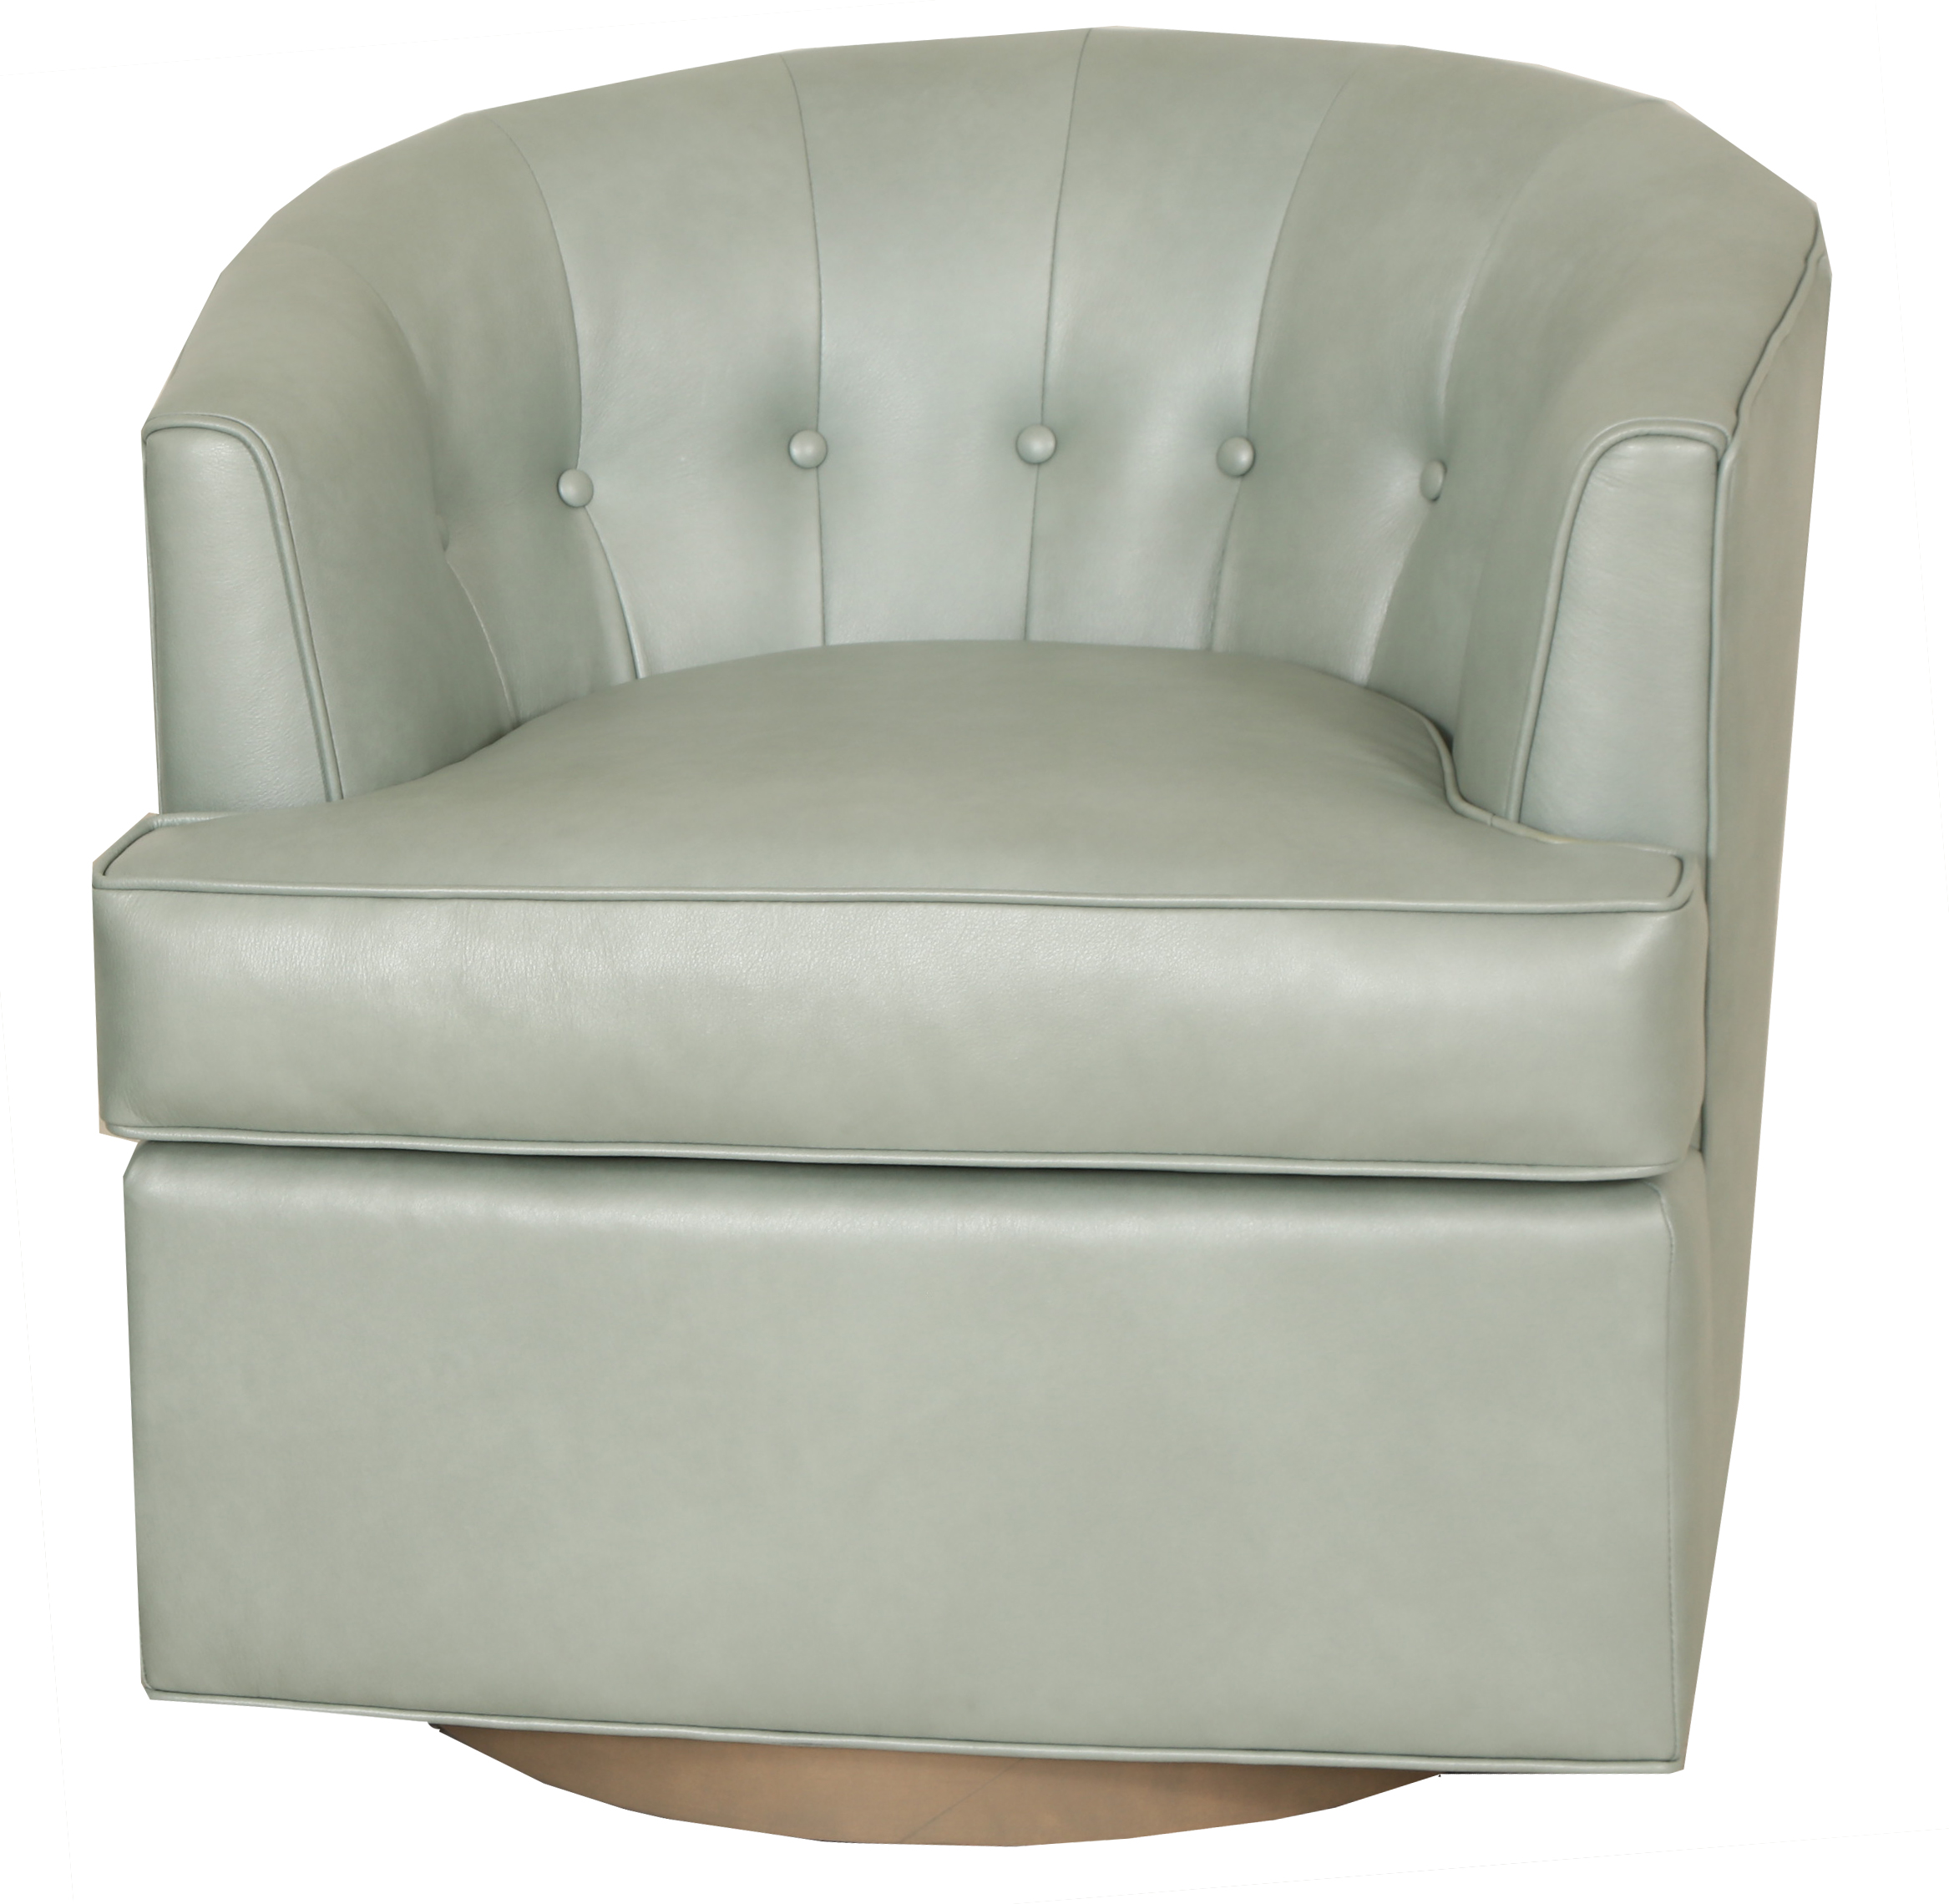 Company C Vincent swivel chair